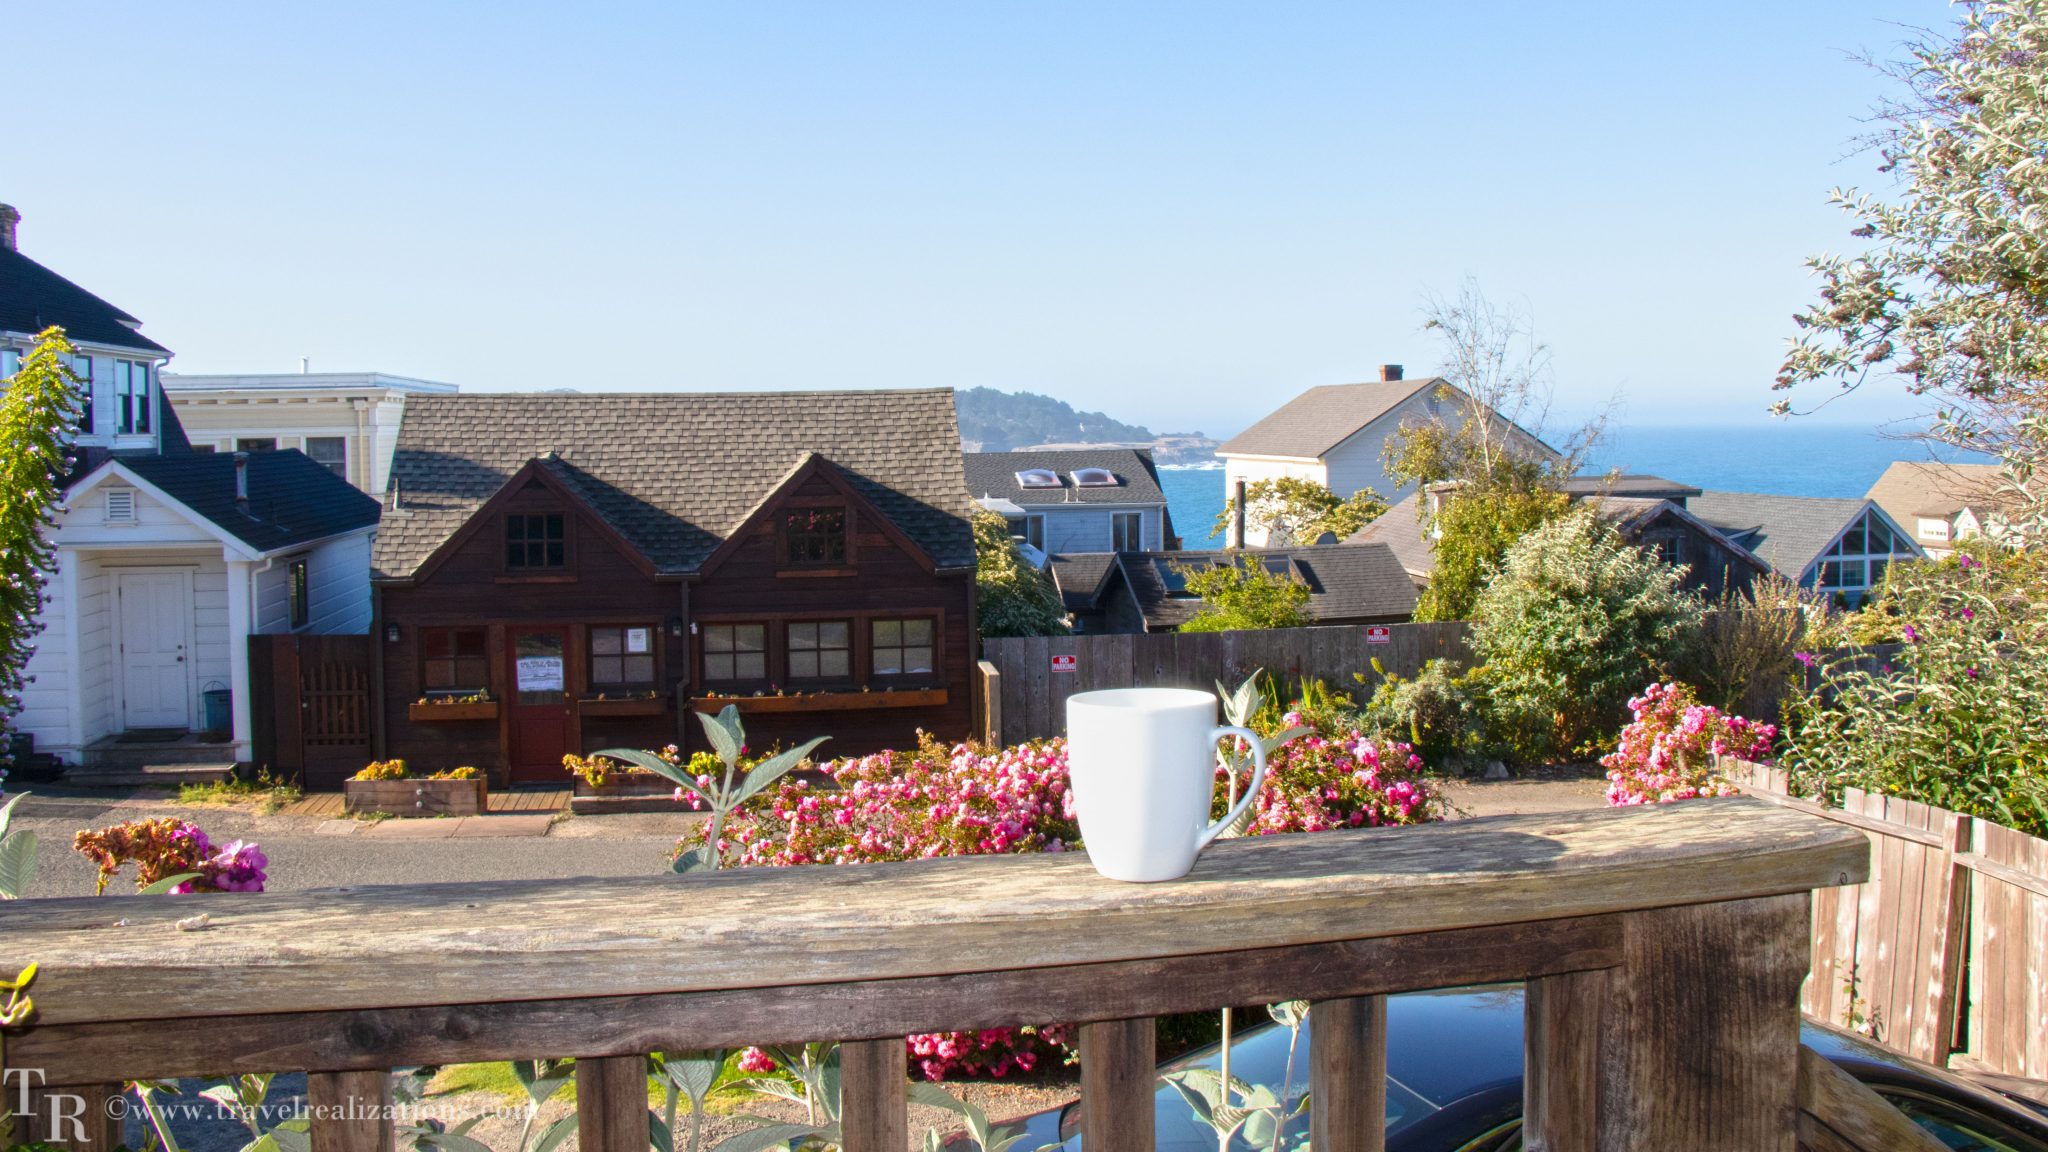 JD House - A beautiful boutique hotel in blooming Mendocino!